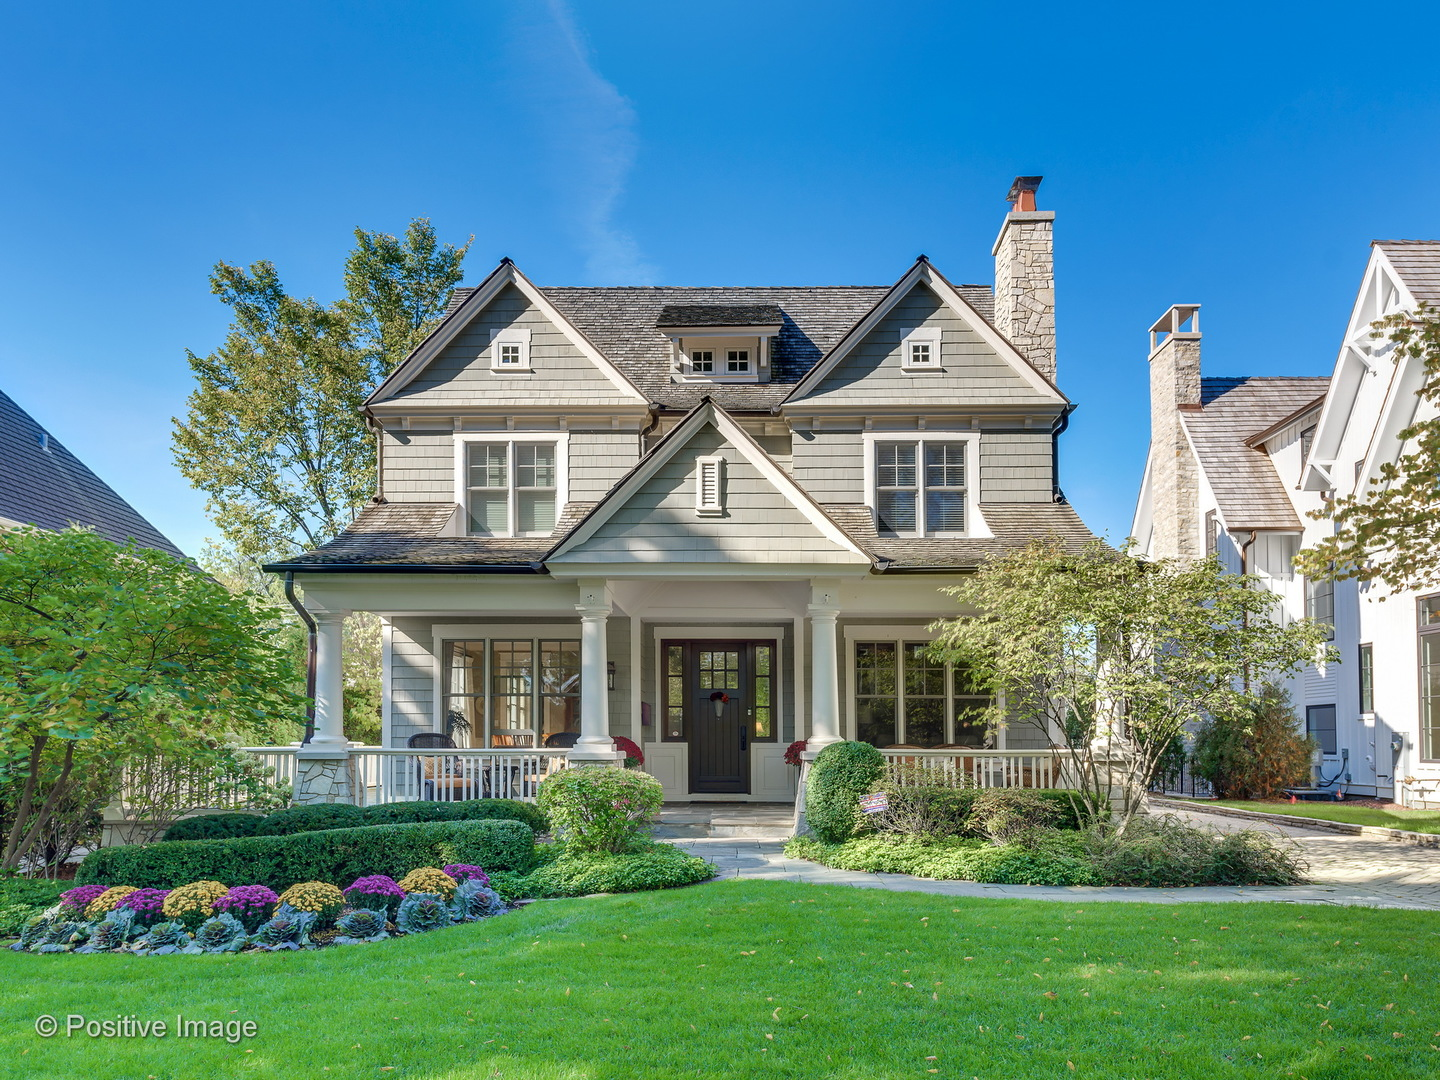 508 South Lincoln Street, Hinsdale, IL - USA (photo 1)